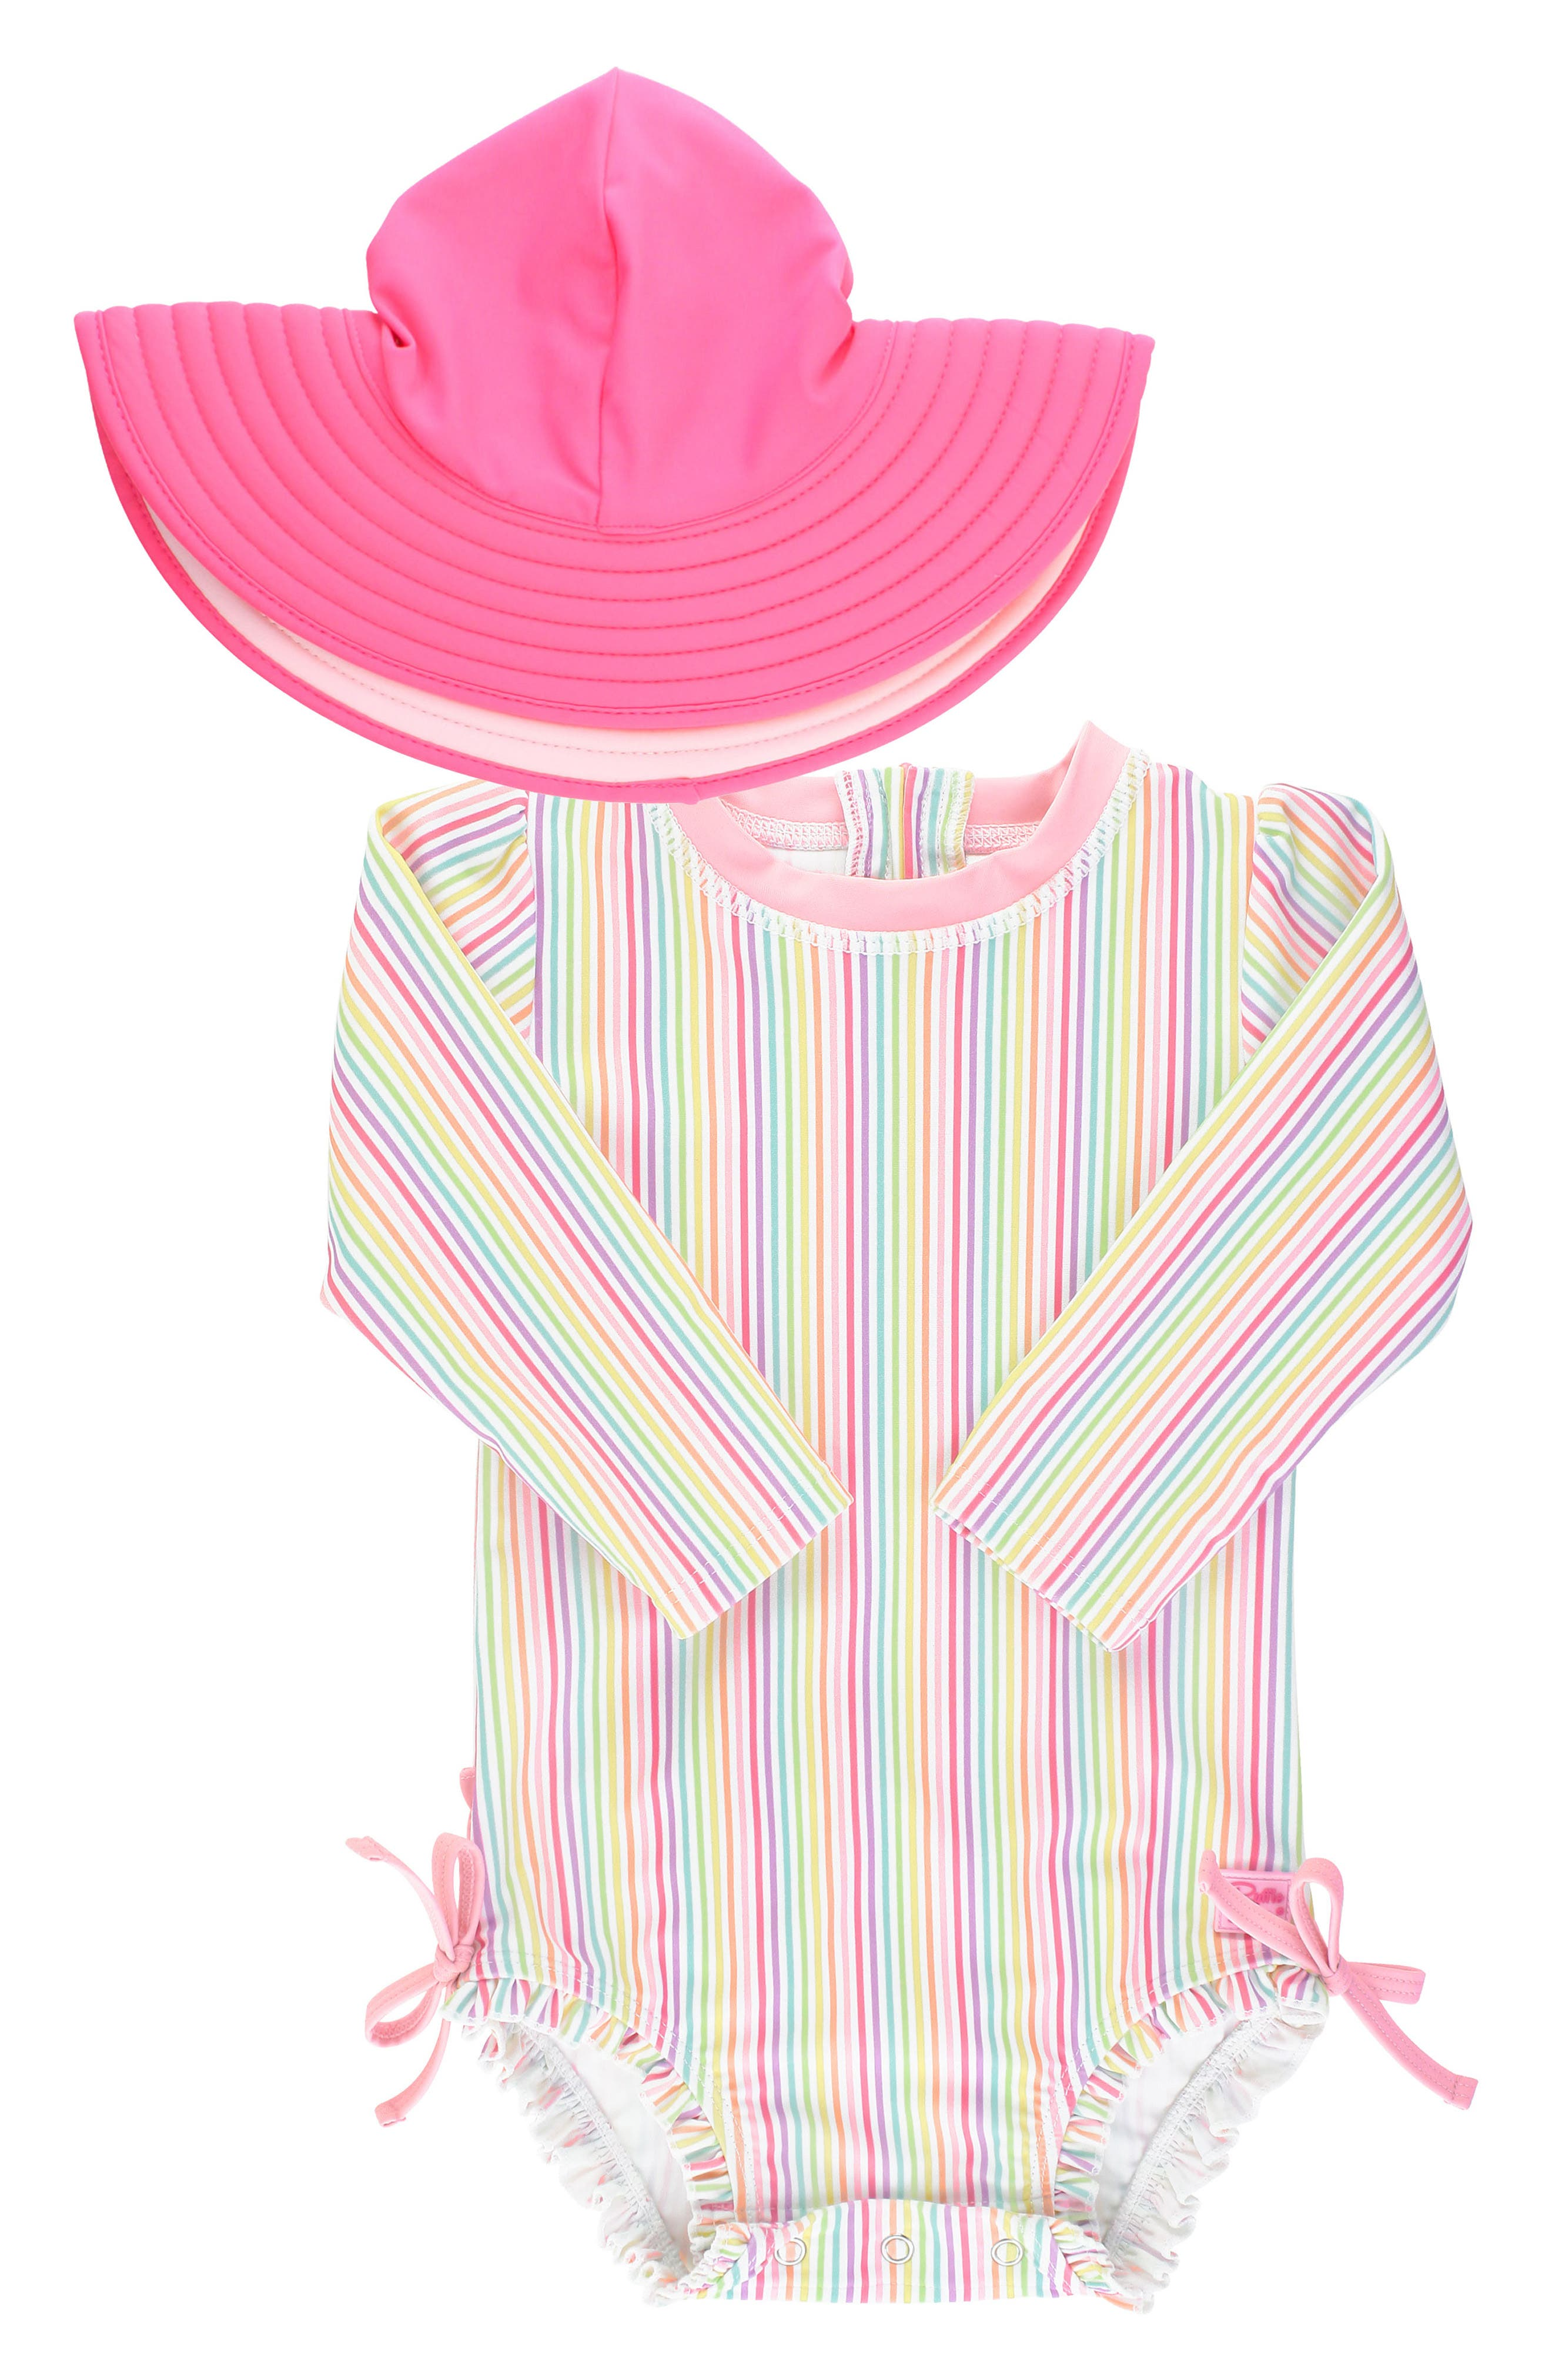 Bright stripes and signature ruffles make this UV-blocking one-piece a beachy fave, while the matching floppy hat adds an extra dose of protective charm. Style Name: Rufflebutts Rainbow Stripe One-Piece Rashguard Swimsuit & Floppy Sun Hat Set (Baby). Style Number: 6027632. Available in stores.